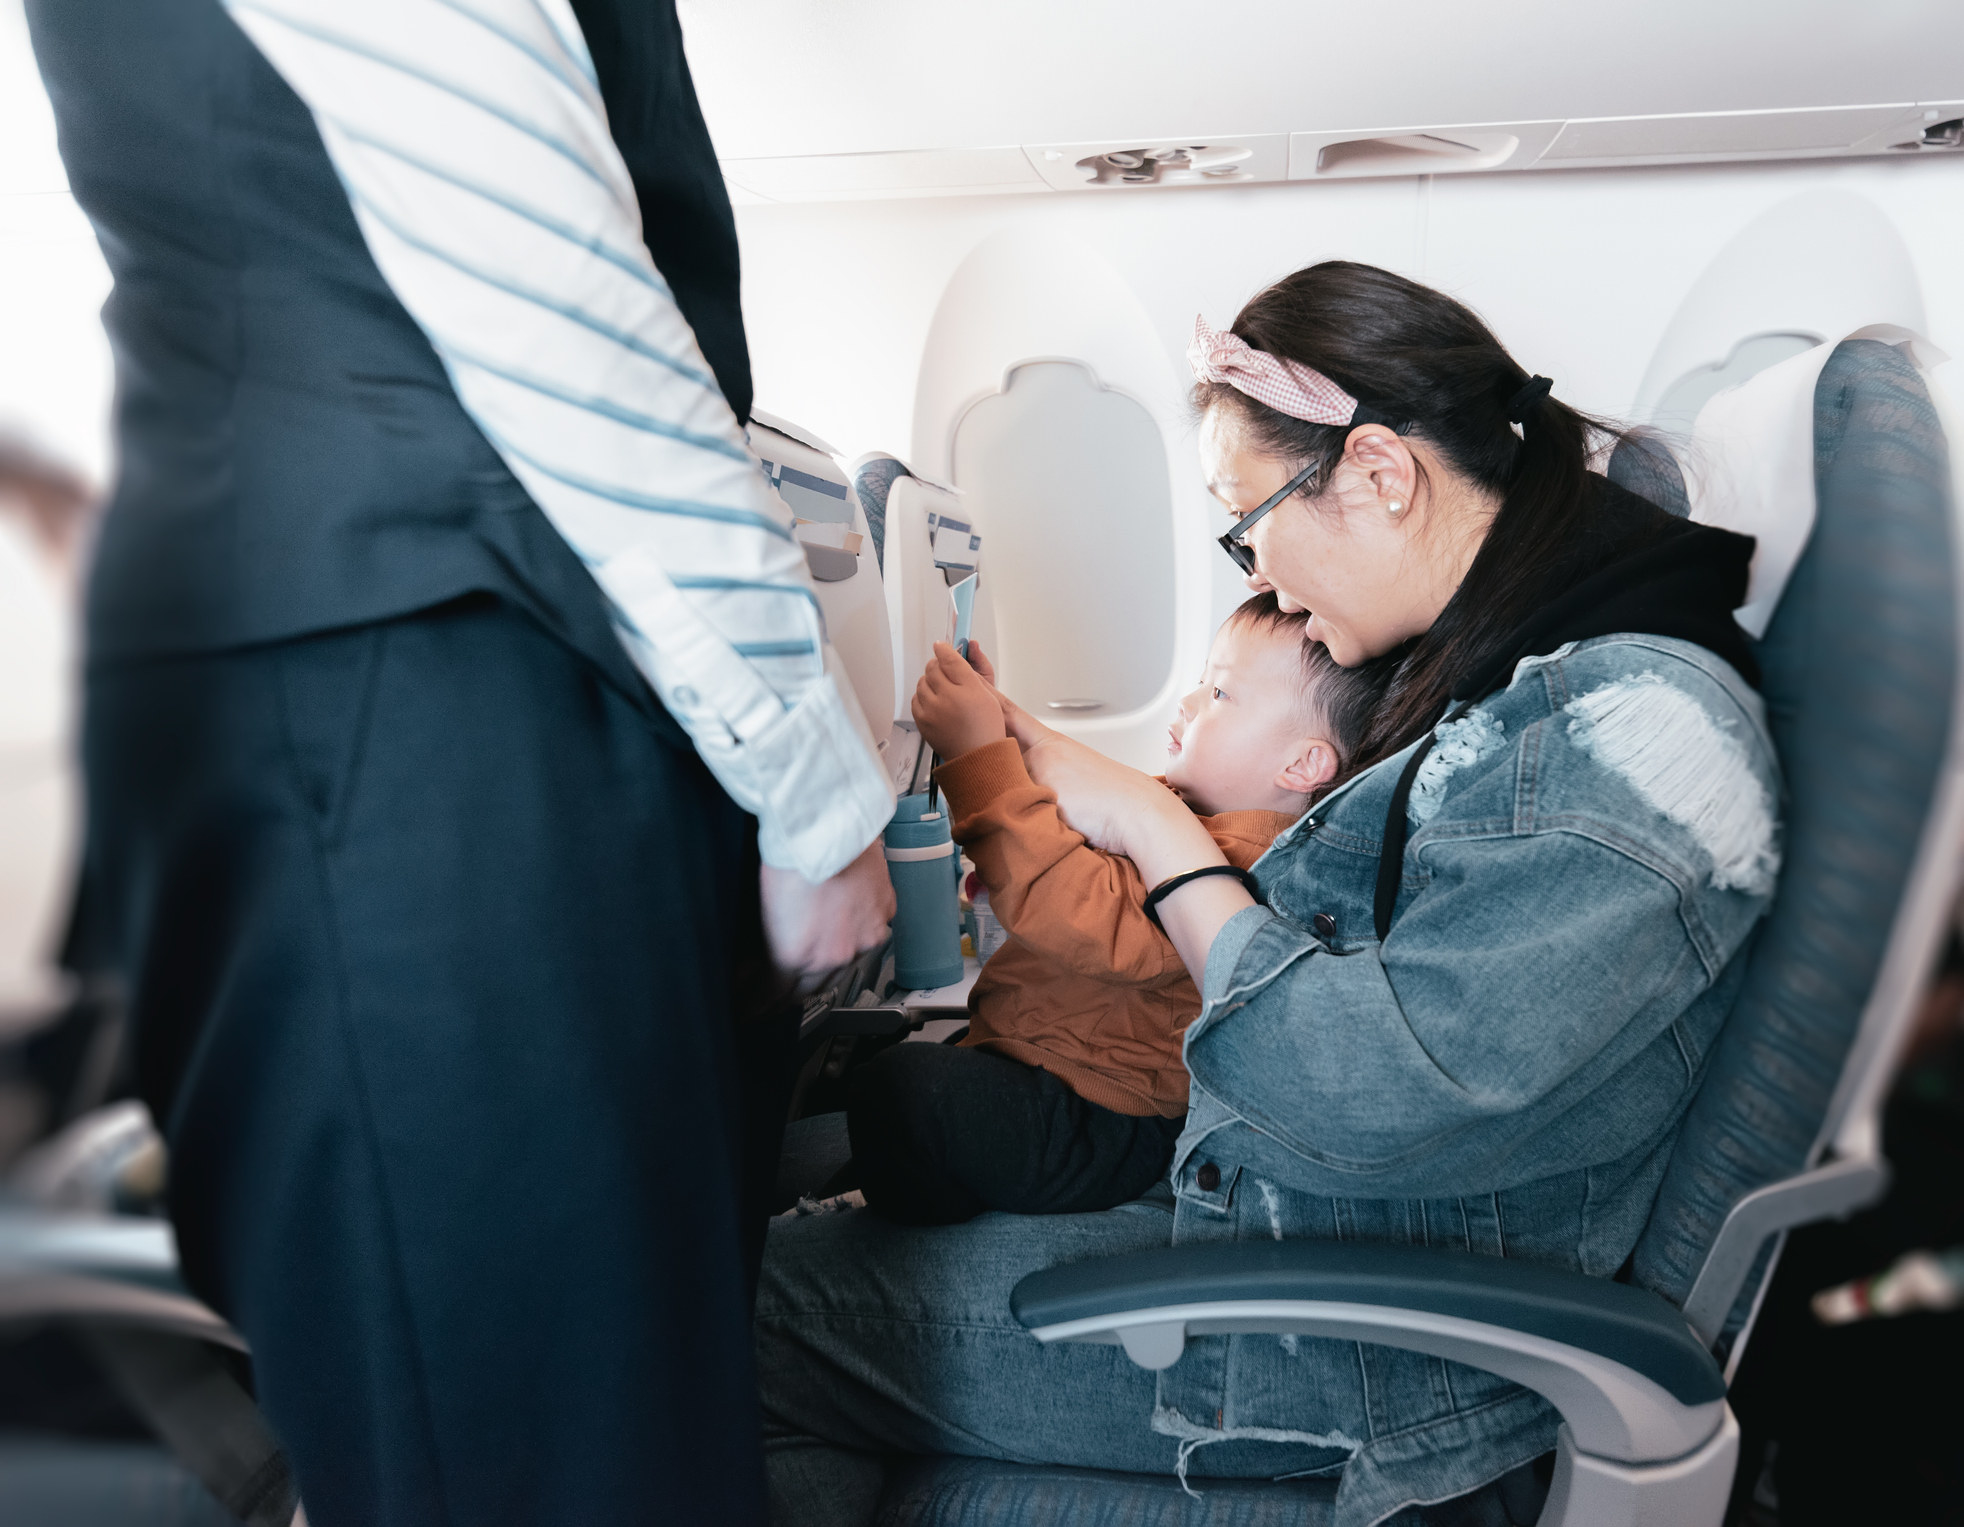 A mom and toddler sitting together on an airplane